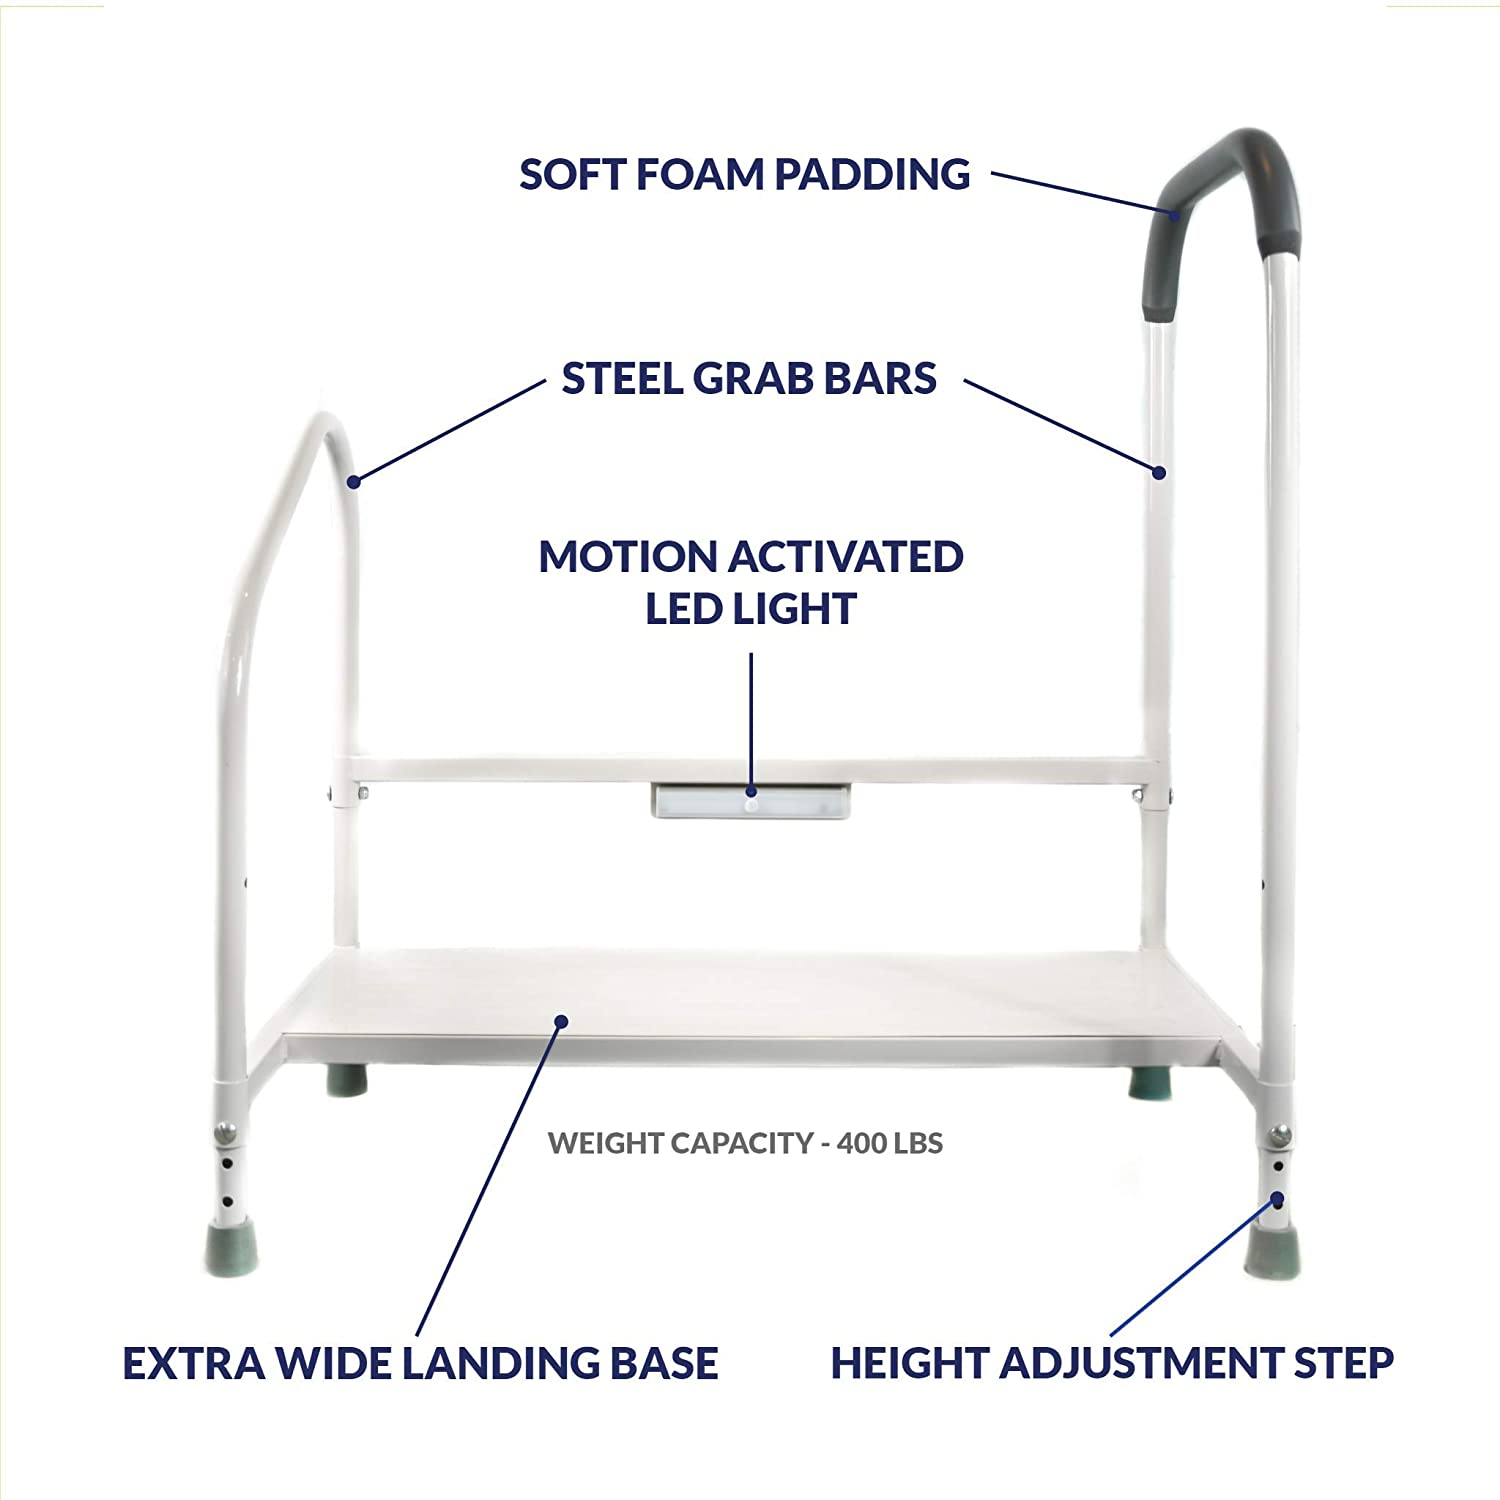 Phenomenal Step2Bed Bed Rails For Elderly With Adjustable Height Bed Step Stool Led Light For Fall Prevention Portable Medical Step Stool Comes With Handicap Ibusinesslaw Wood Chair Design Ideas Ibusinesslaworg